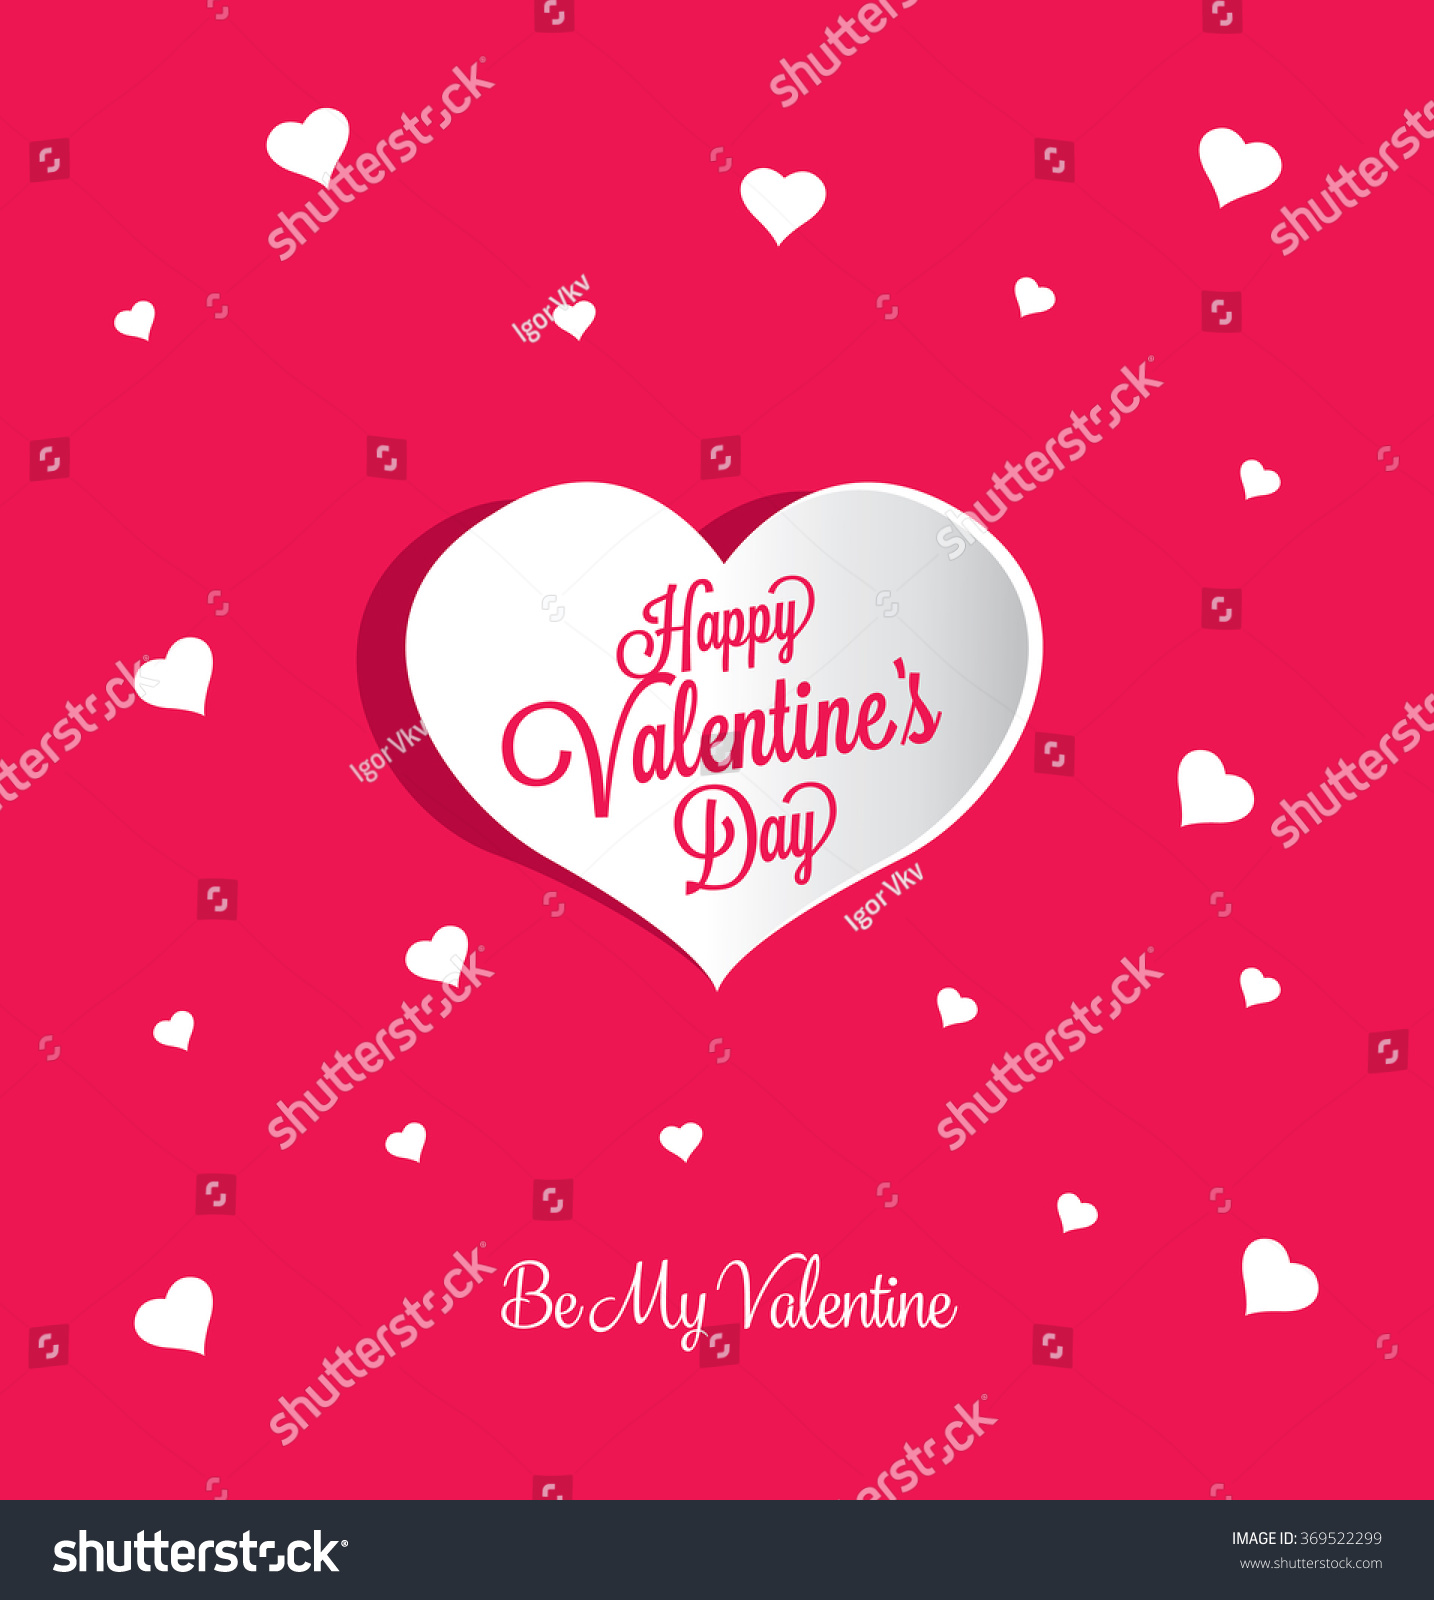 Valentines Greeting Card Stock Vector 369522299 Shutterstock